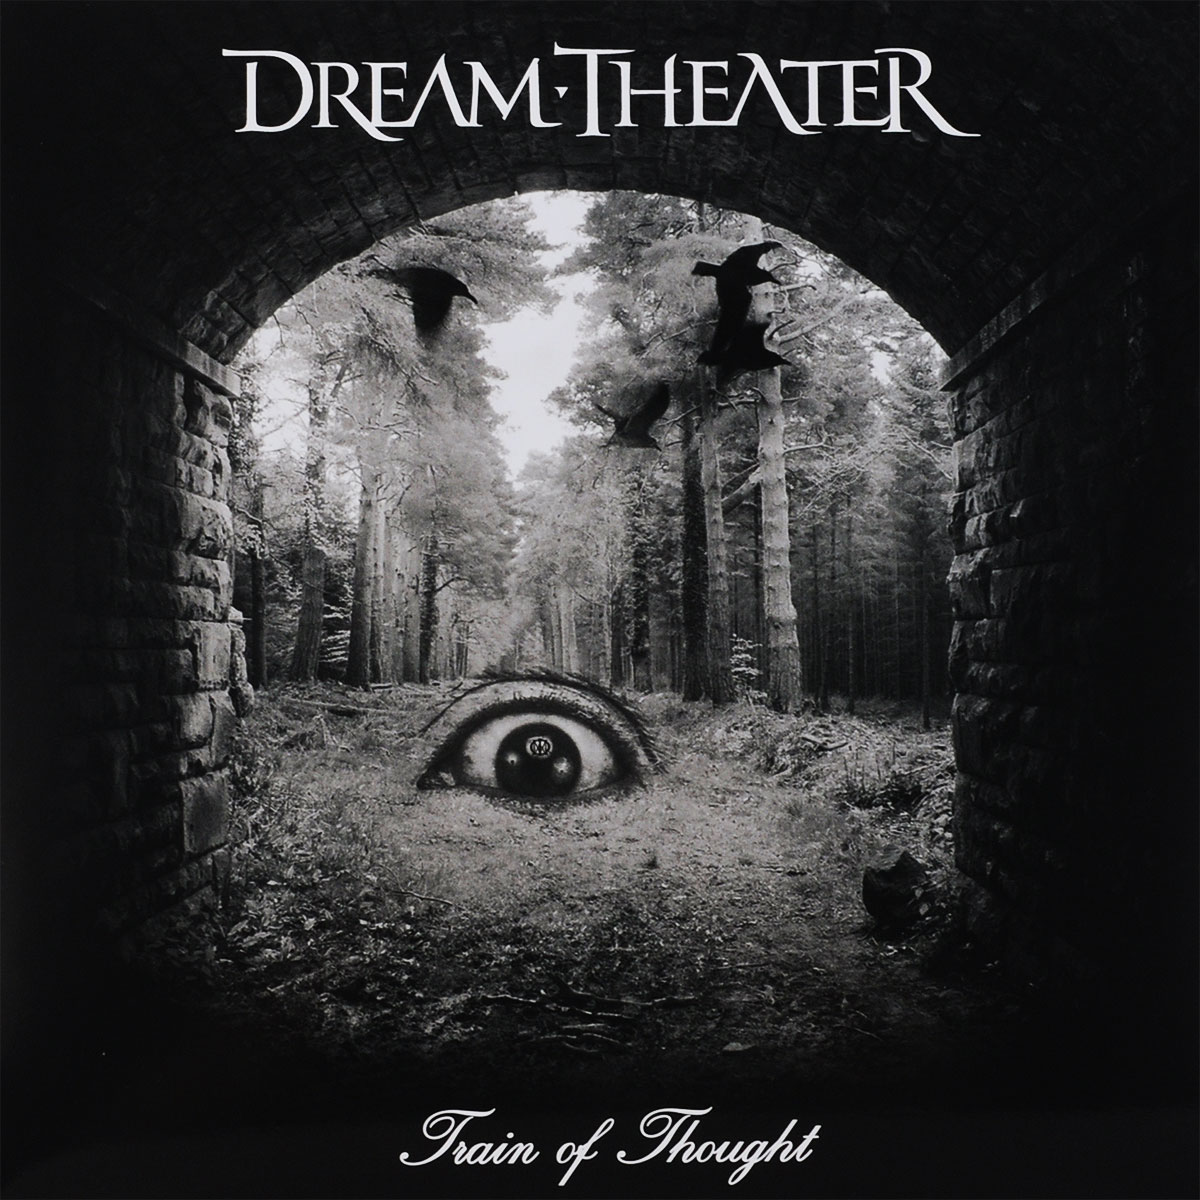 Dream Theater DREAM THEATER Train Of Thought LP dream theater dream theater train of thought lp